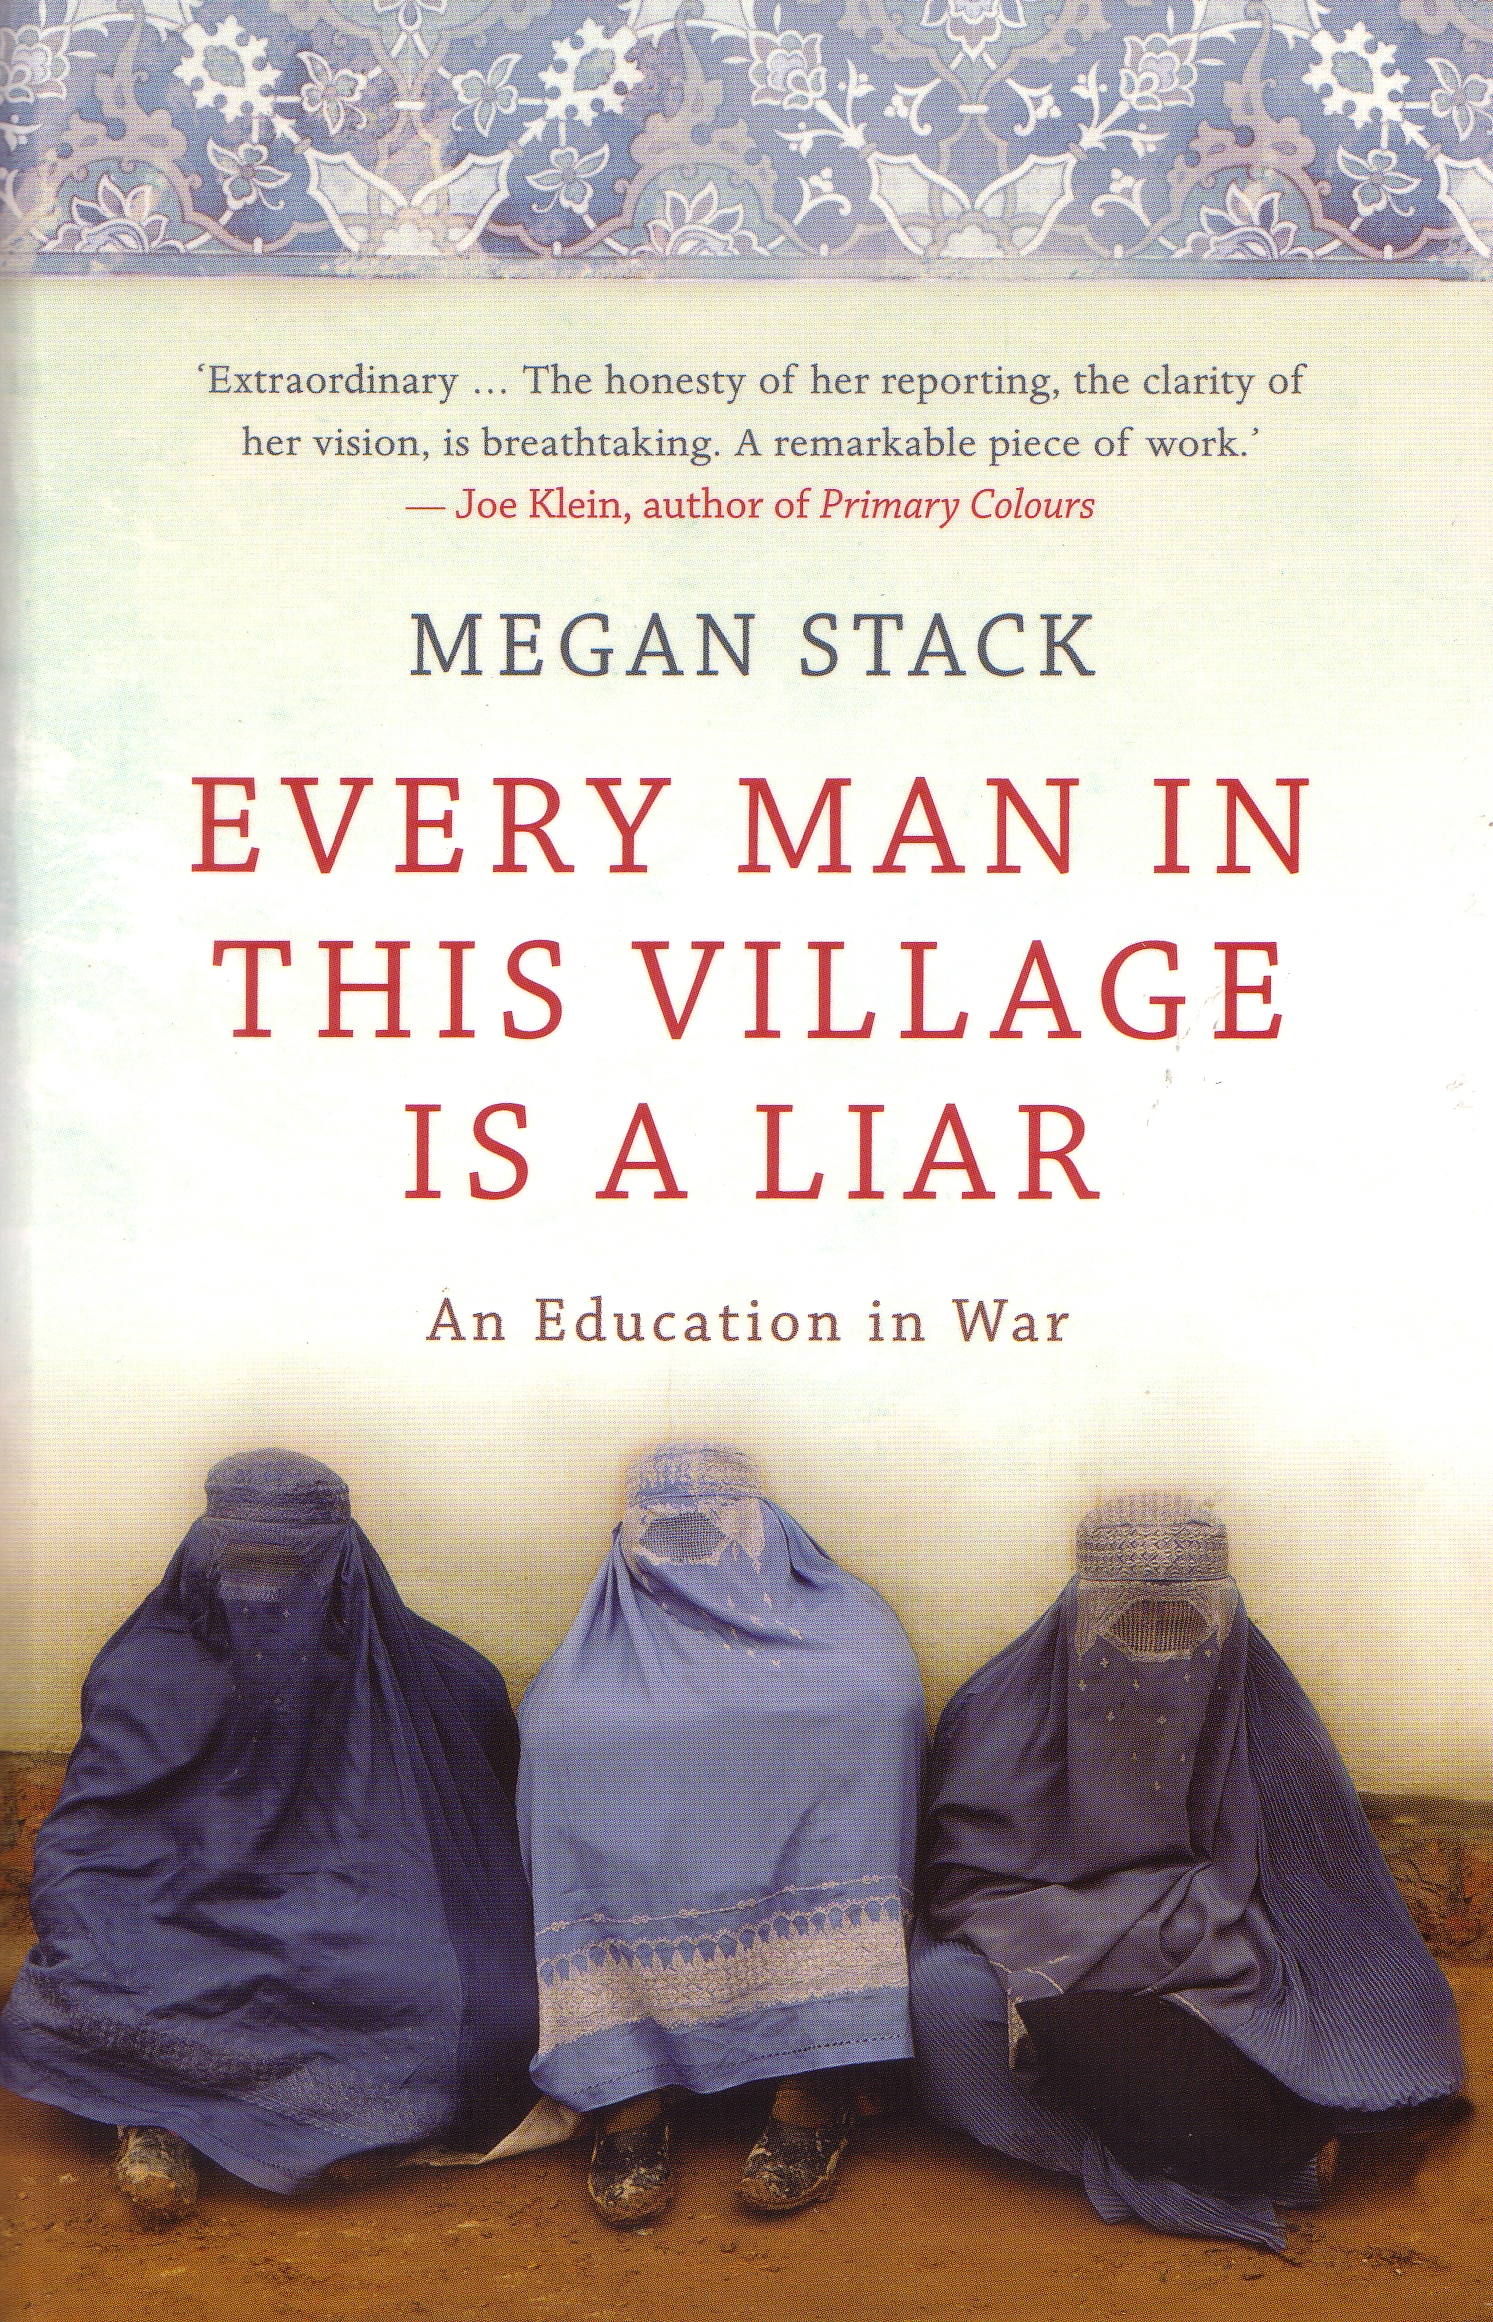 Every Man in this Village is a Liar: An Education in War by Megan Stack